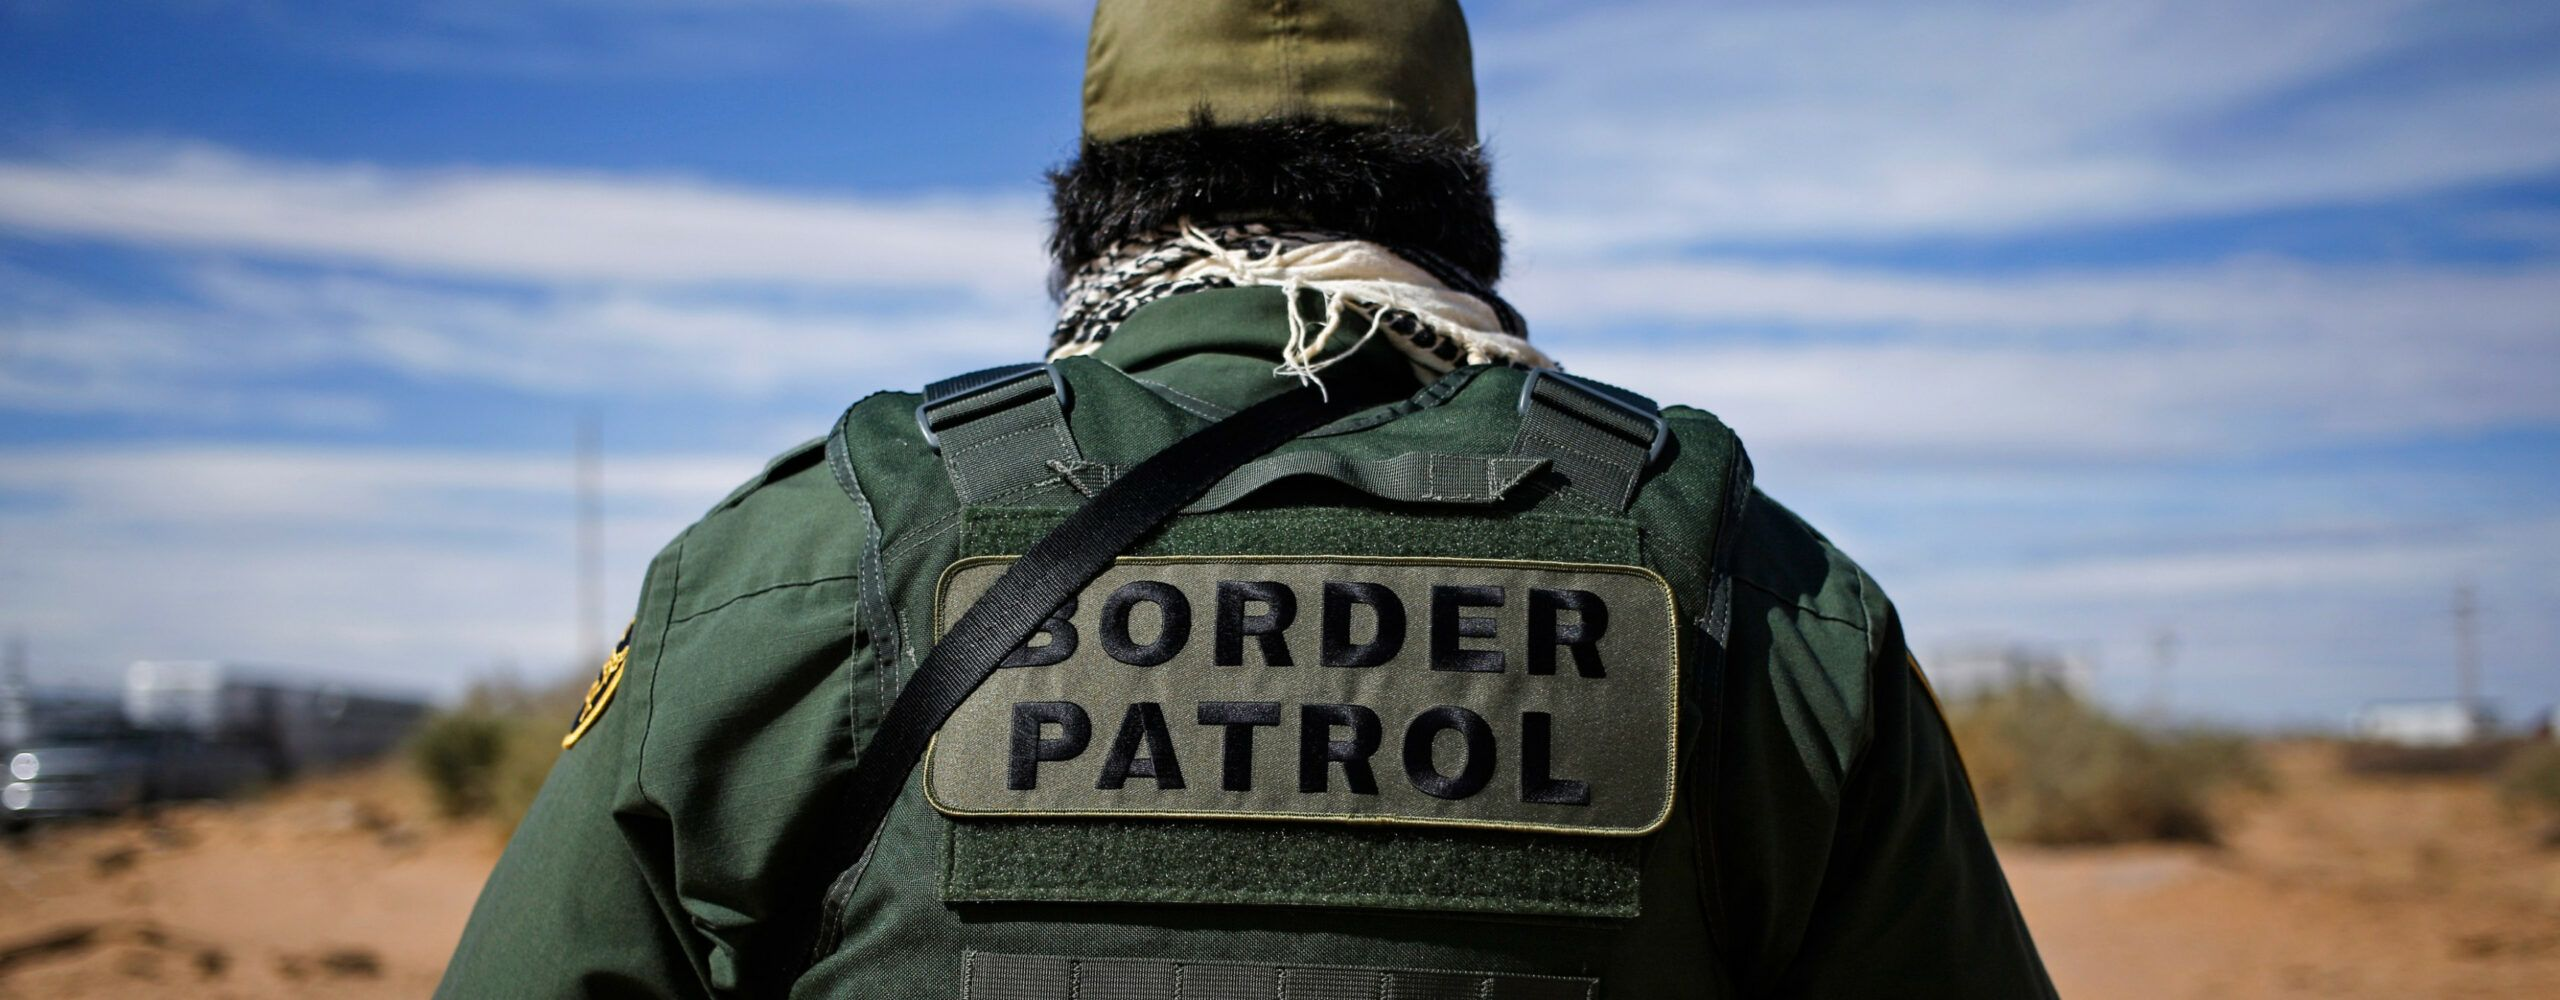 Give Your Id Card To The Border Guard Give Your Id Card To The